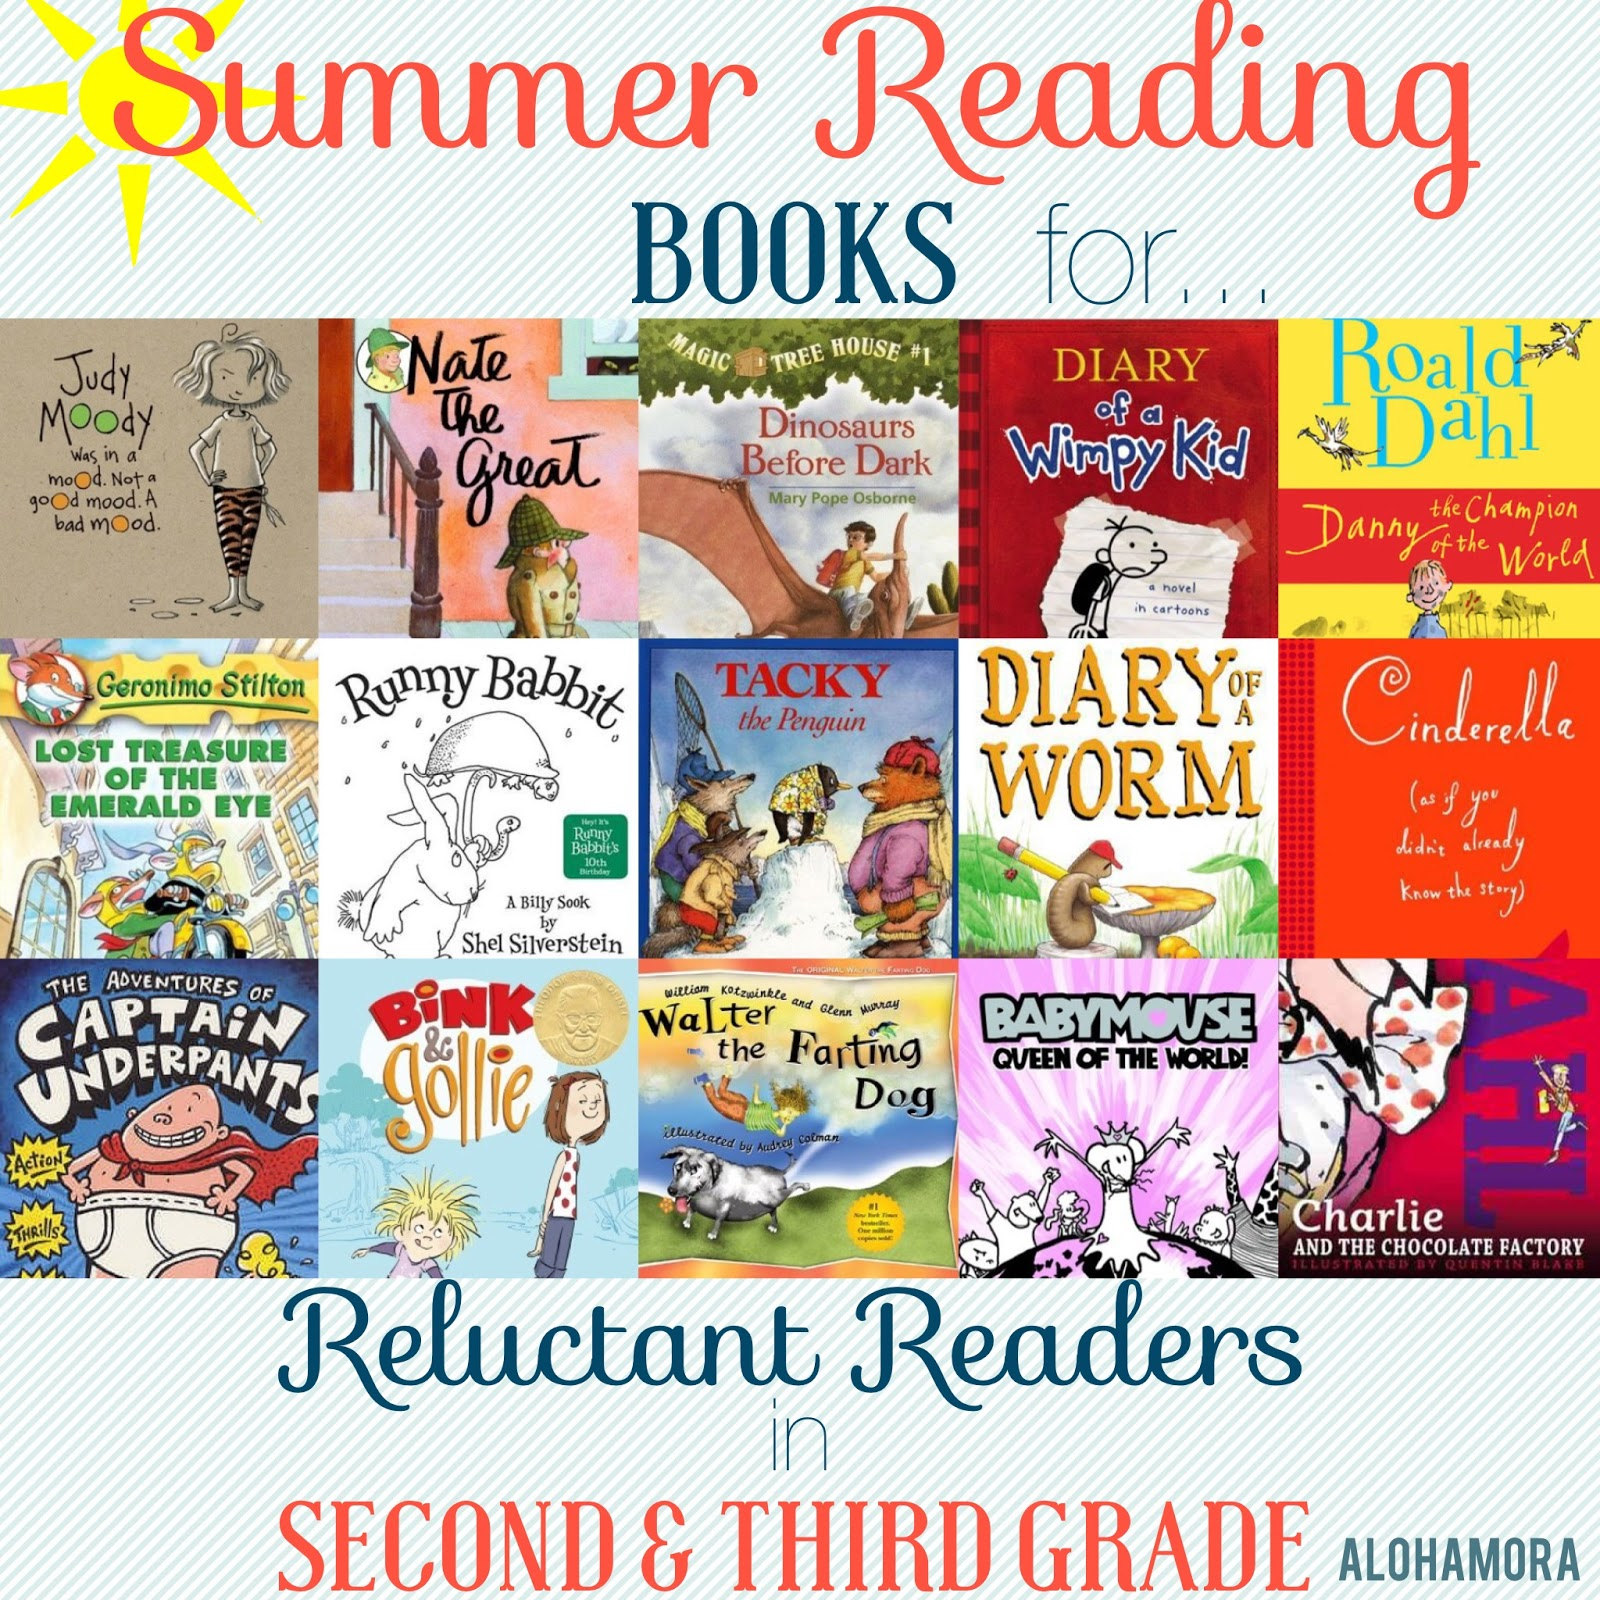 A Summer Reading Book List for Reluctant Readers aka Kids Who Don't Like to Read in Second (2nd) and Third (3rd) Grade.  These books are great for boys, and girls, and make great read alouds for parents, teachers, grandparents, etc. Humorous/funny books. Mystery, realistic fiction, picture books, graphic novels, illustrated novels, etc. Alohamora Open a Book http://www.alohamoraopenabook.blogspot.com/